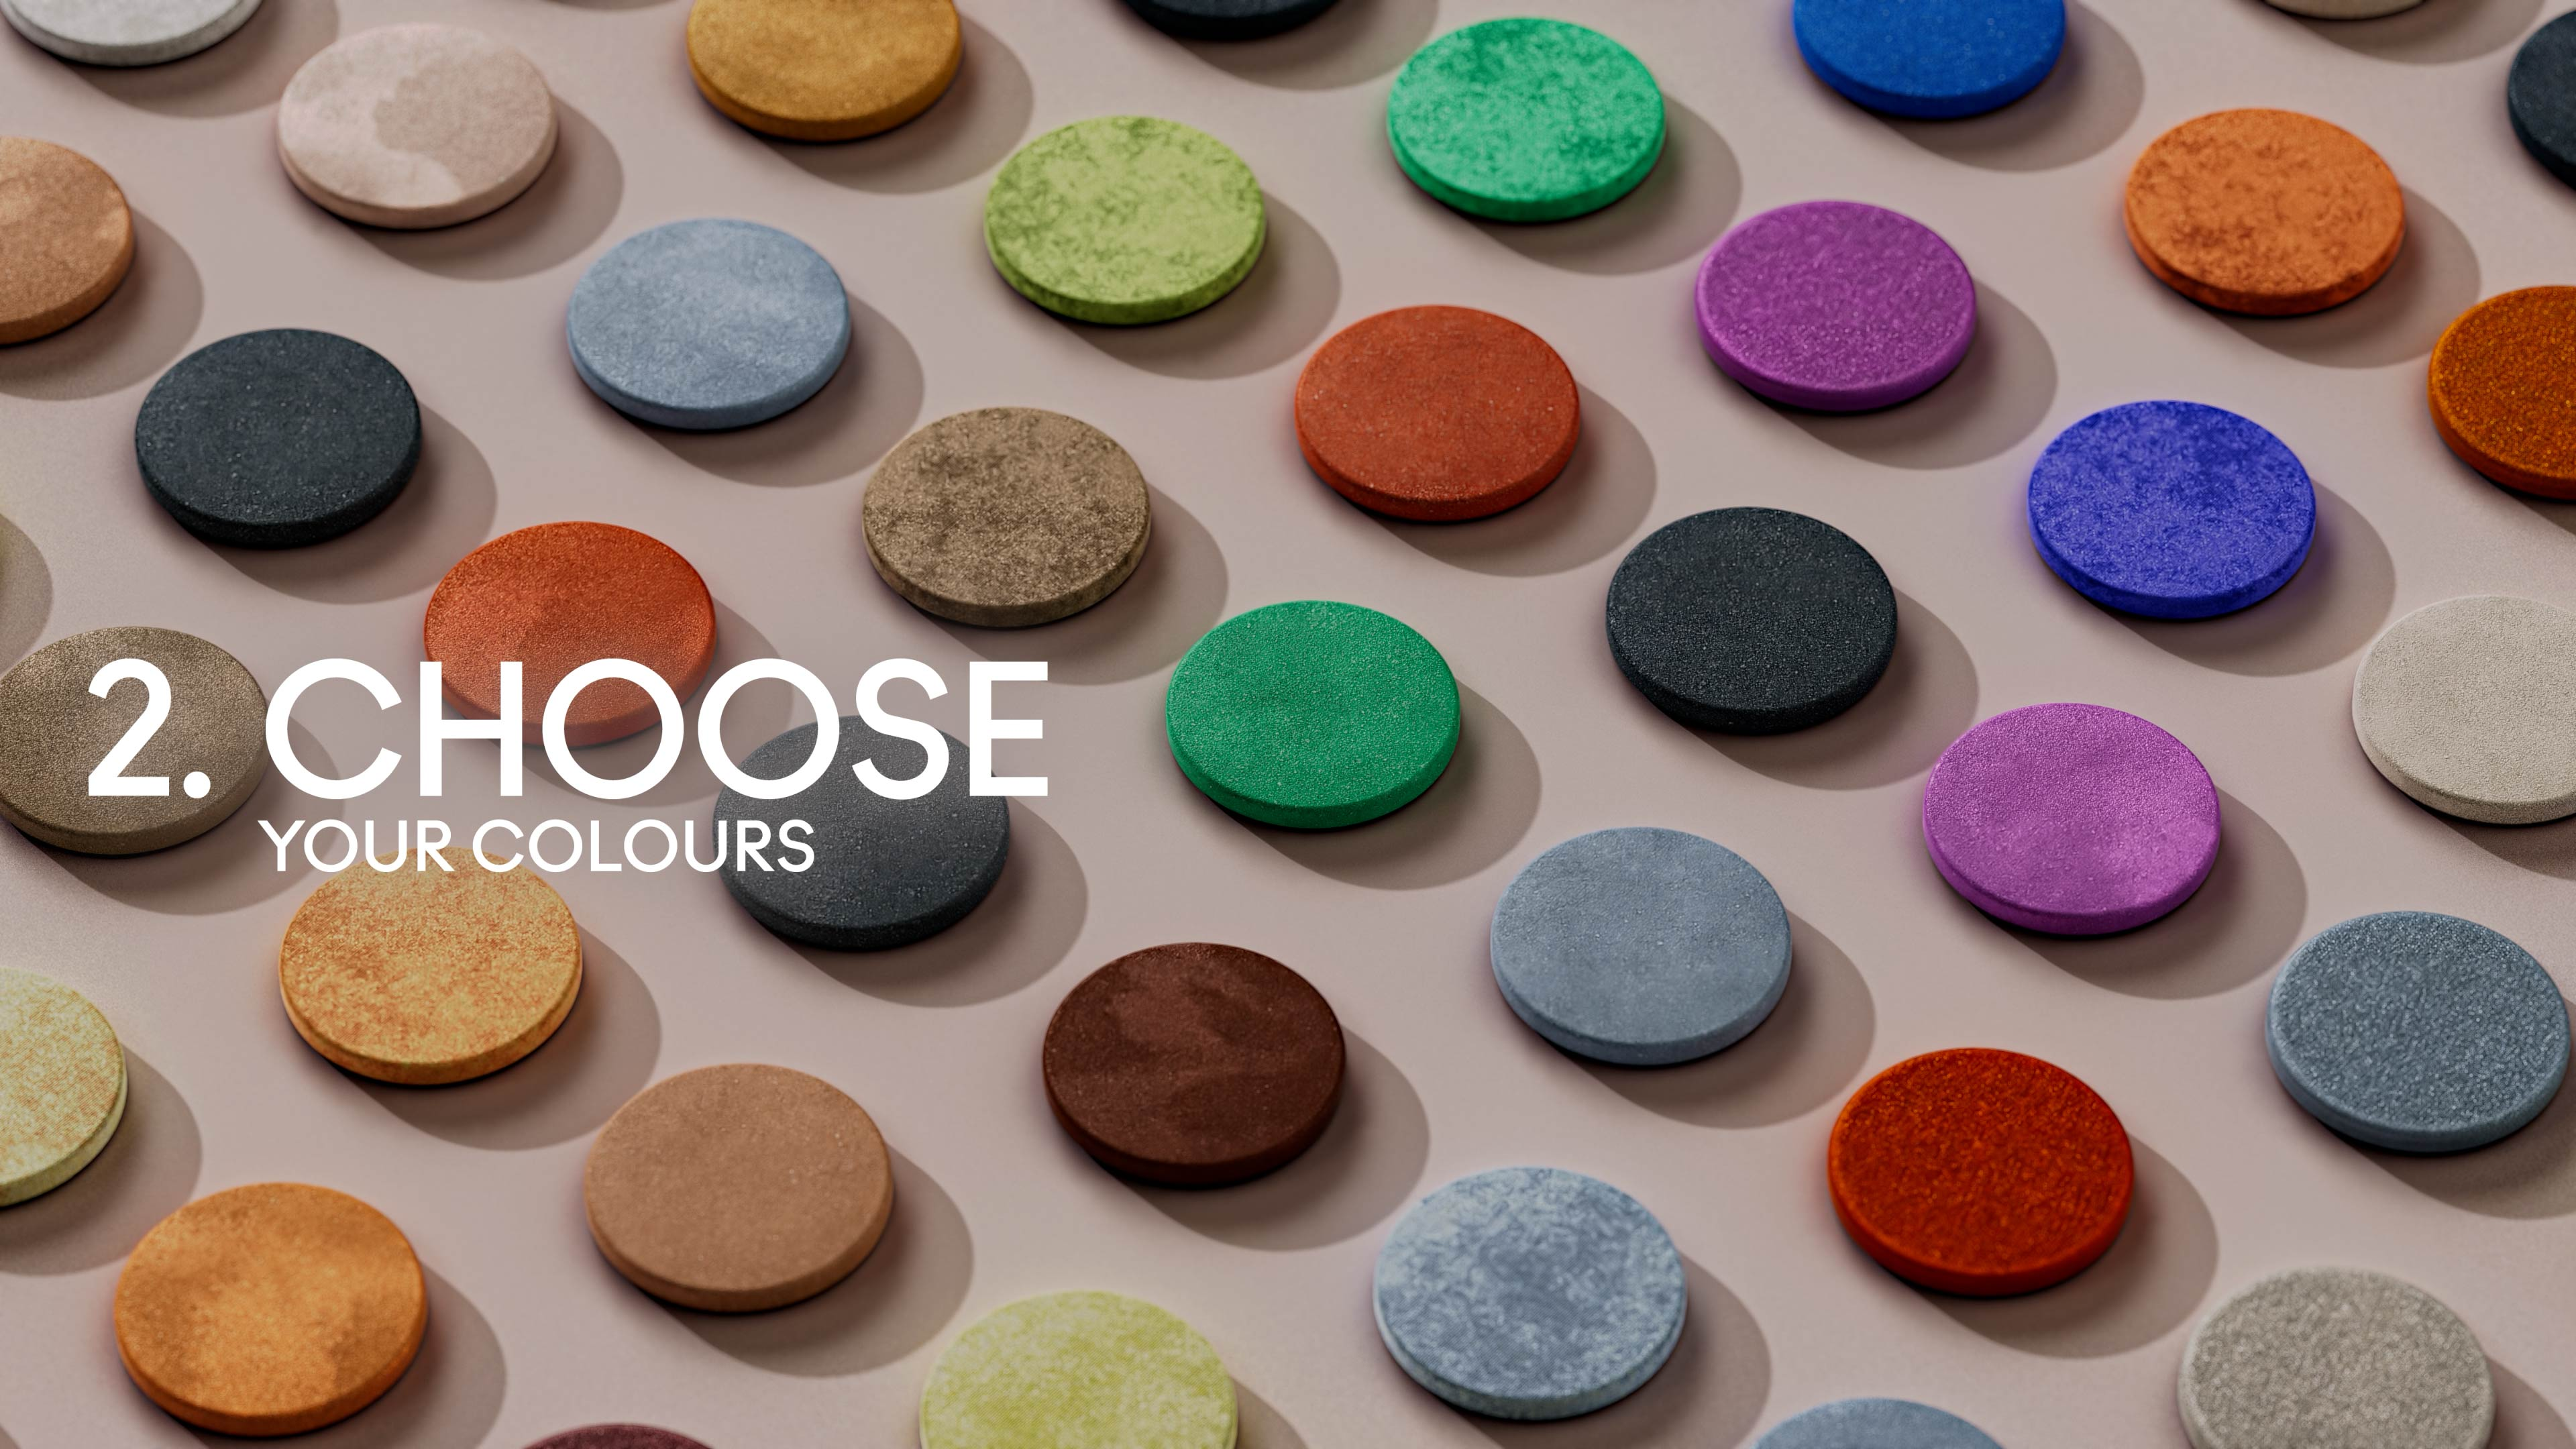 3D Motion design with cosmetic colored powder